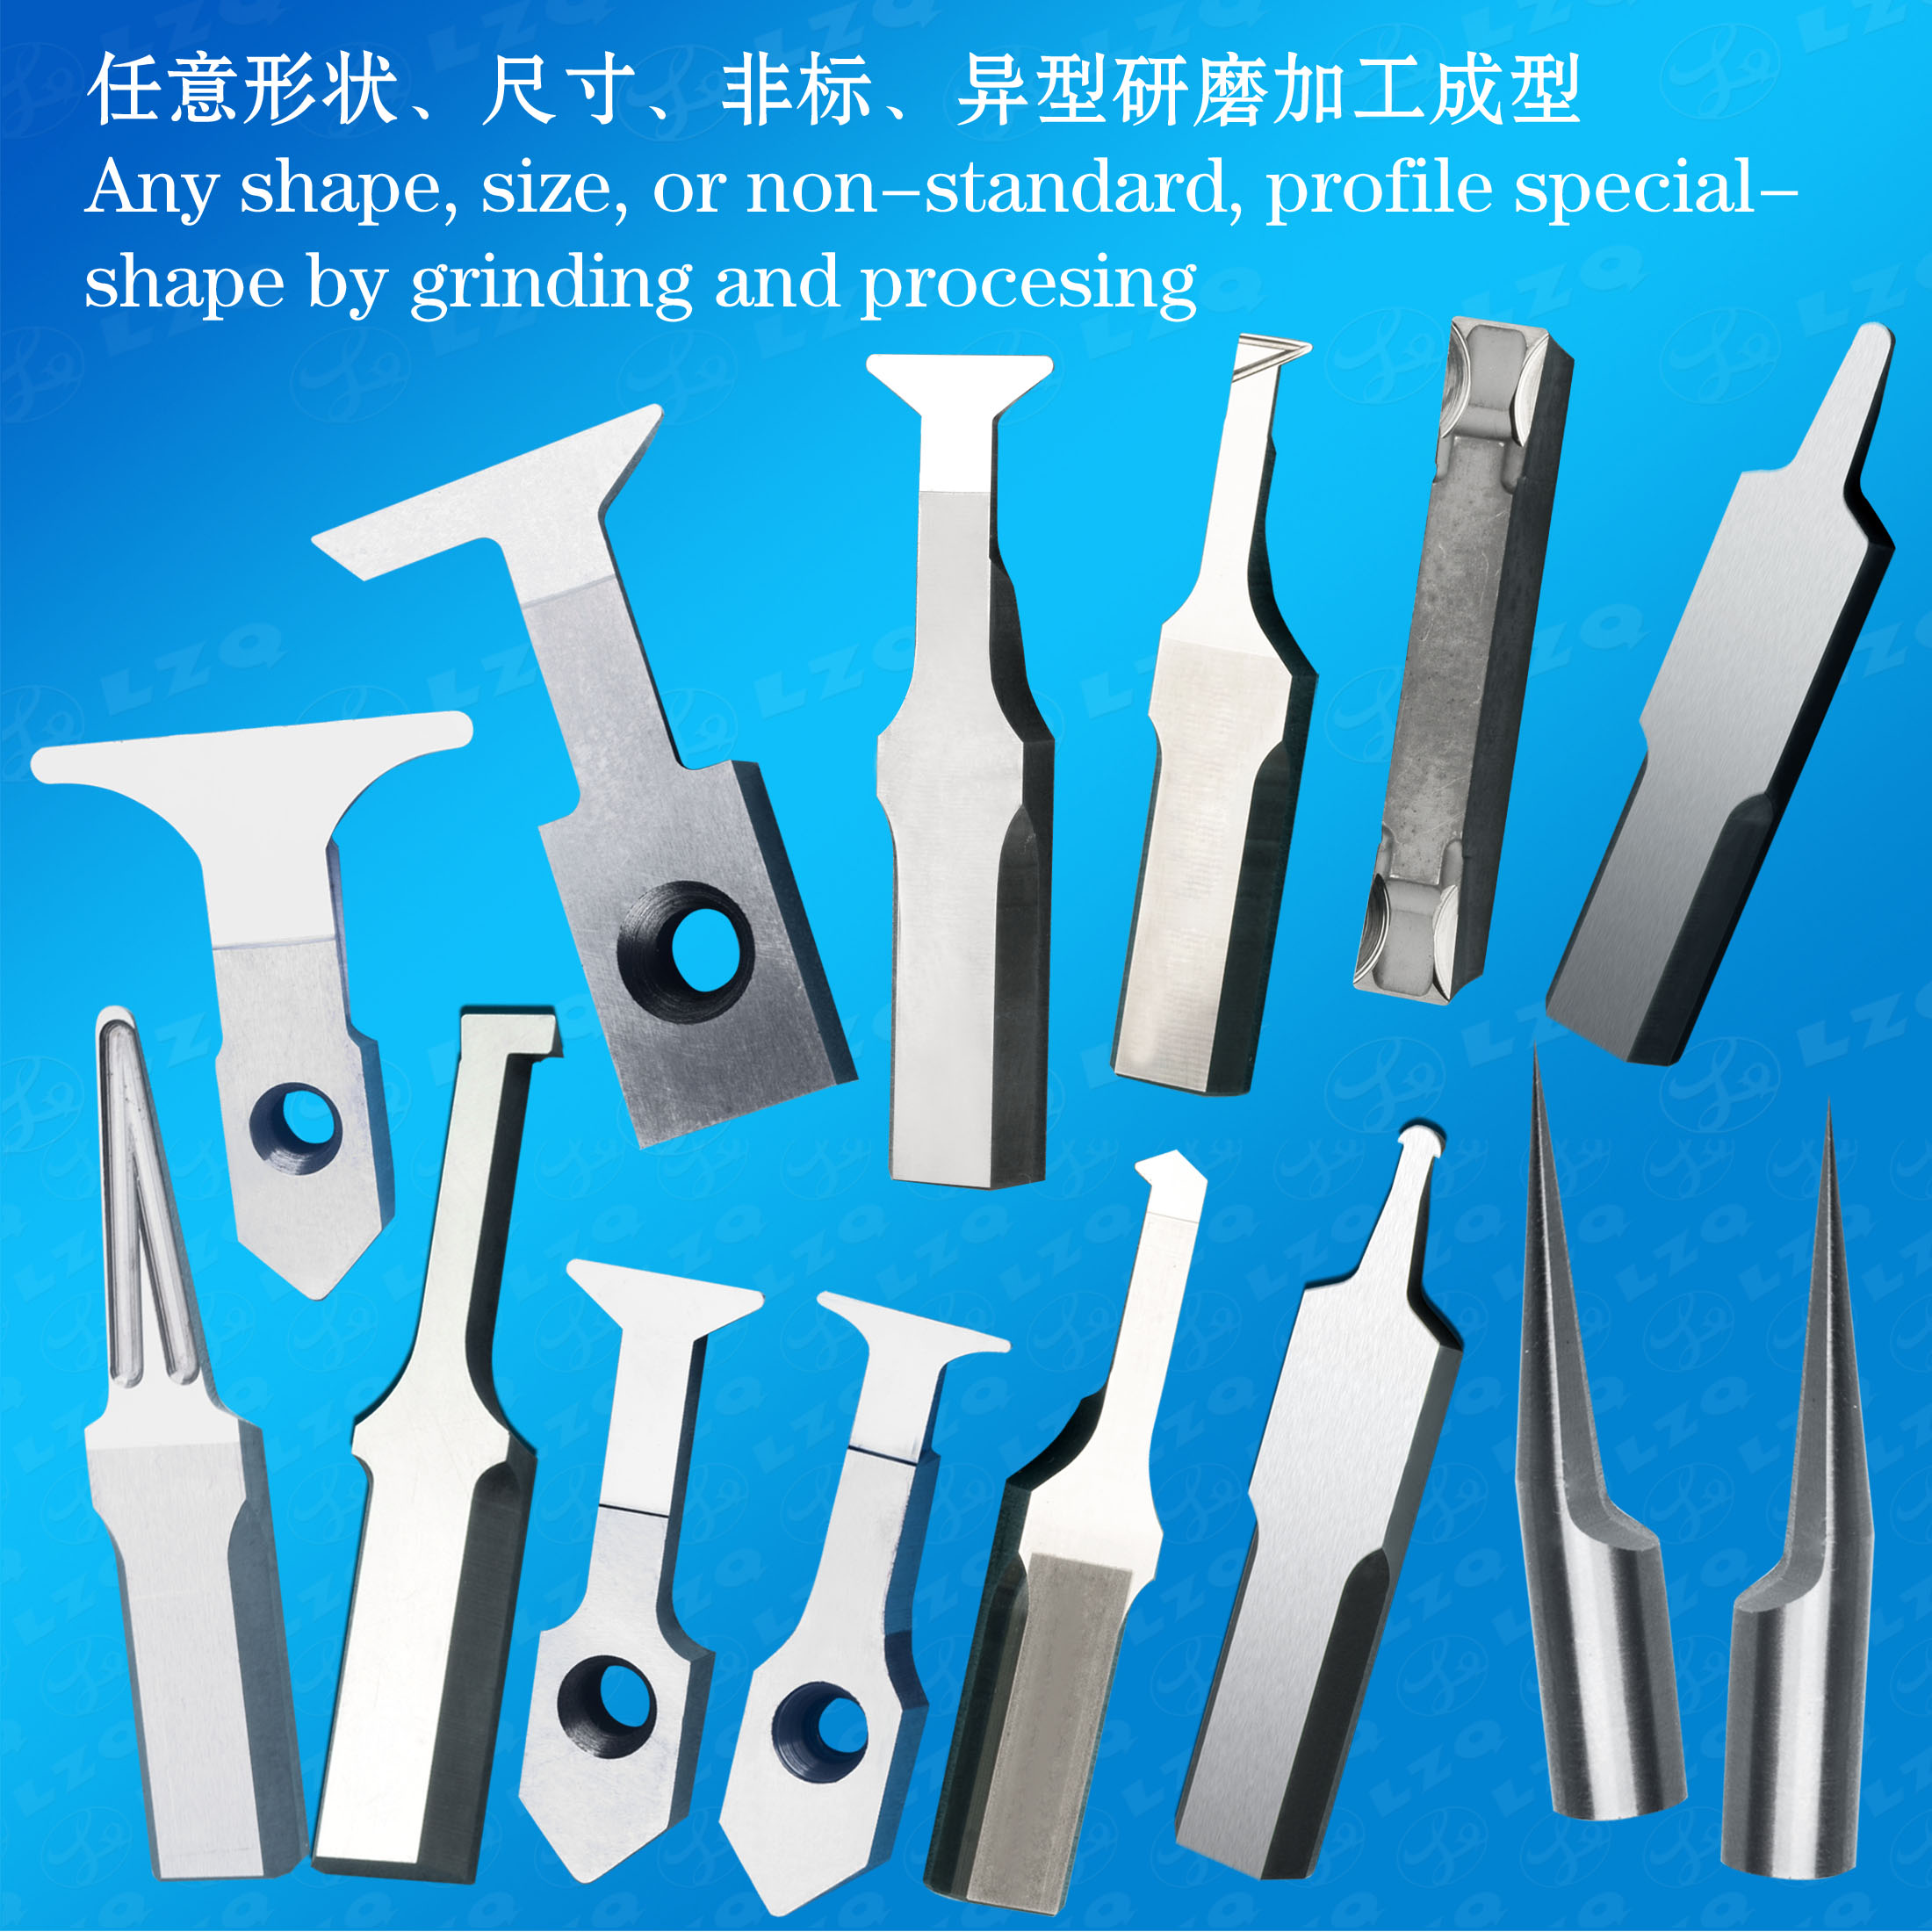 Diamond Turning Tool, Superhard Turning Tool, Superhard Hit Blade